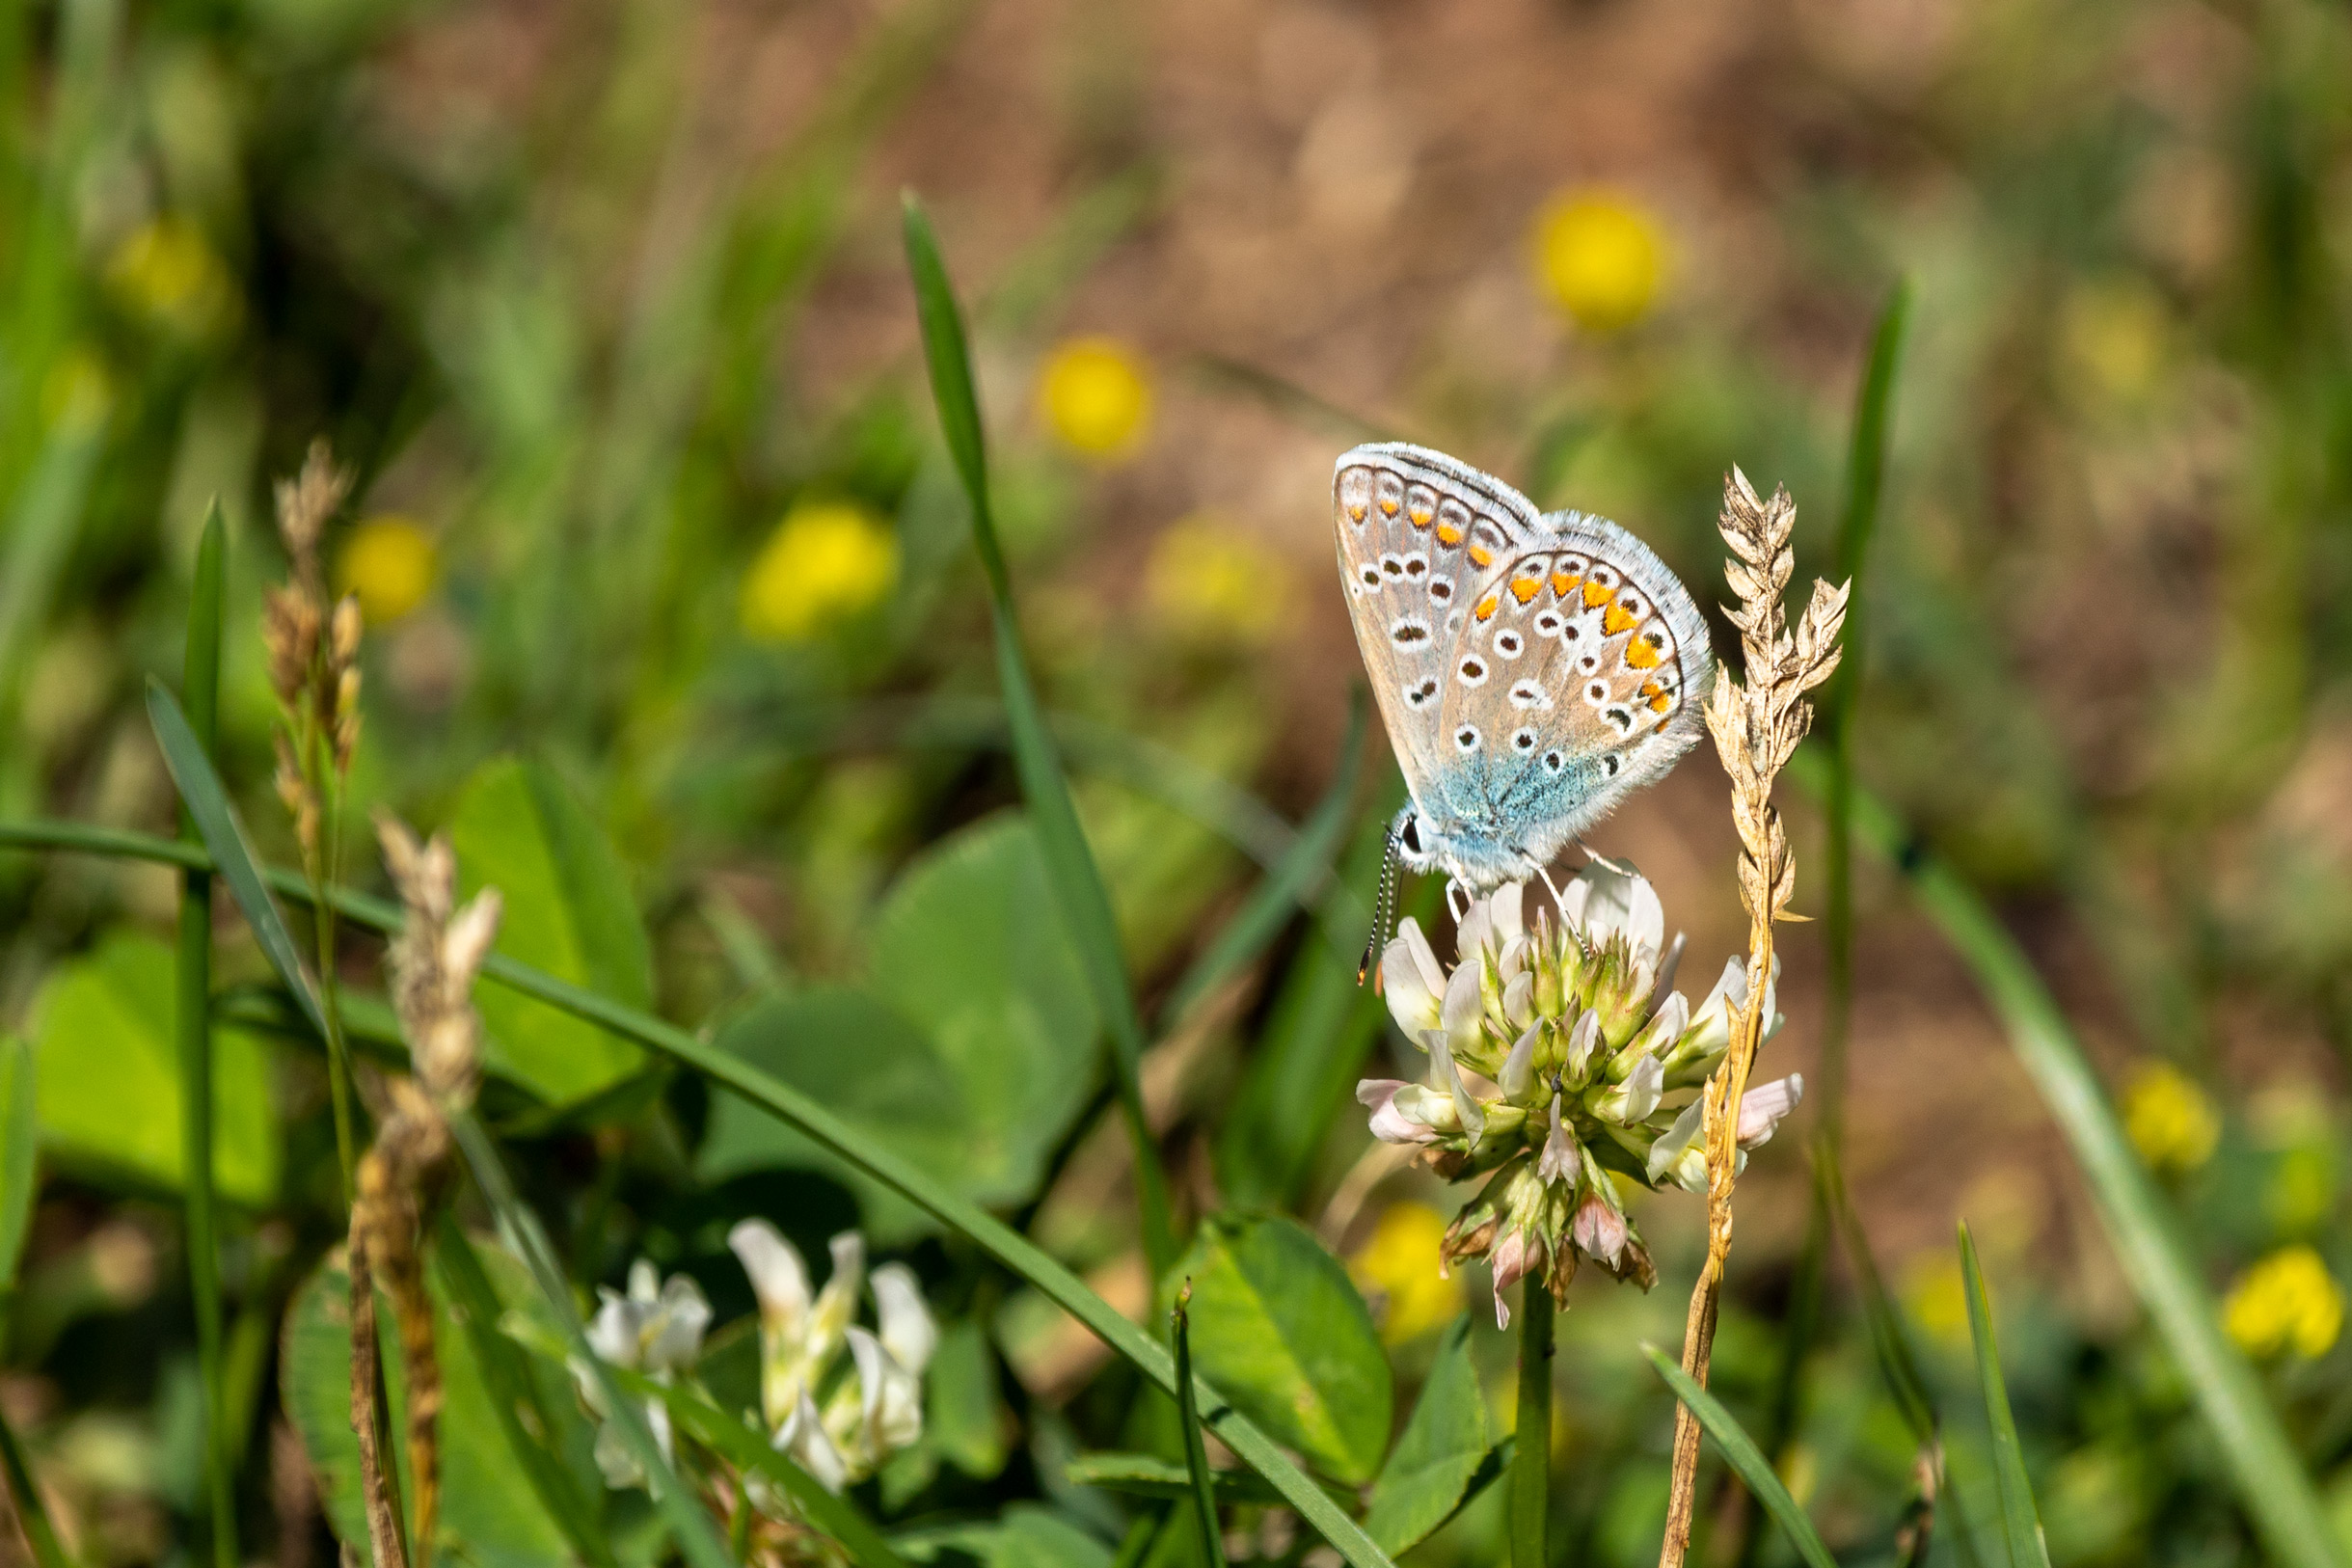 Small butterfly with spotted blue, orange, black and white wings on a clover flower